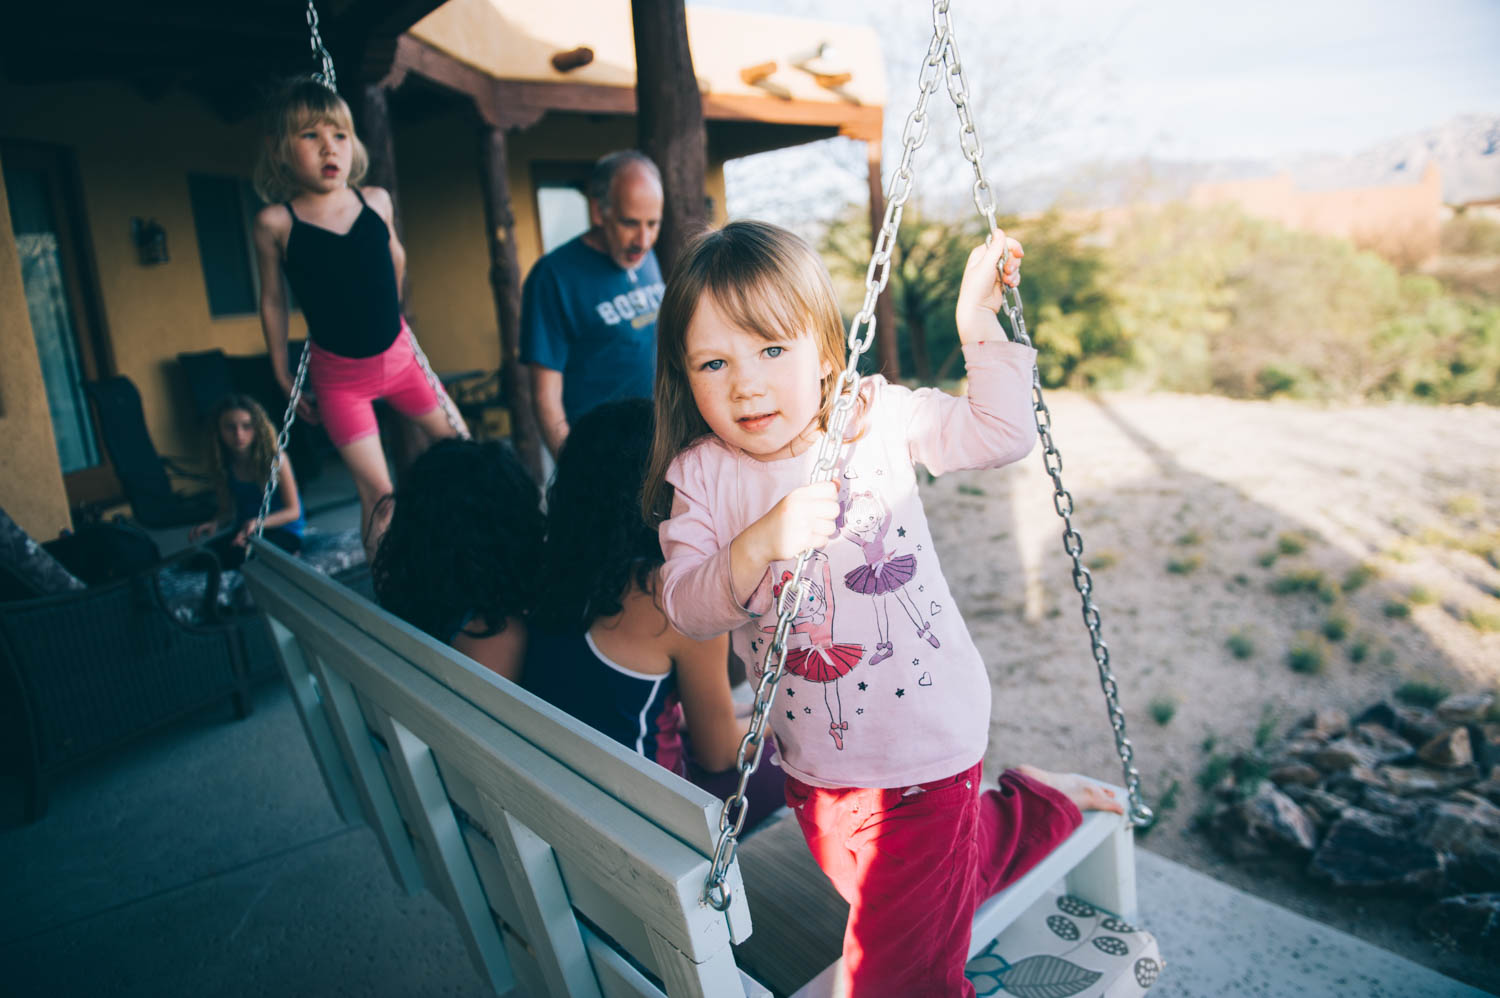 We went to spend Saturday evening with this cutie and her family (Karl's sister's family), sat outside and watched the full moon rise over the Catalinas and washed our (very, very dirty) climbing ropes in their bathtub.